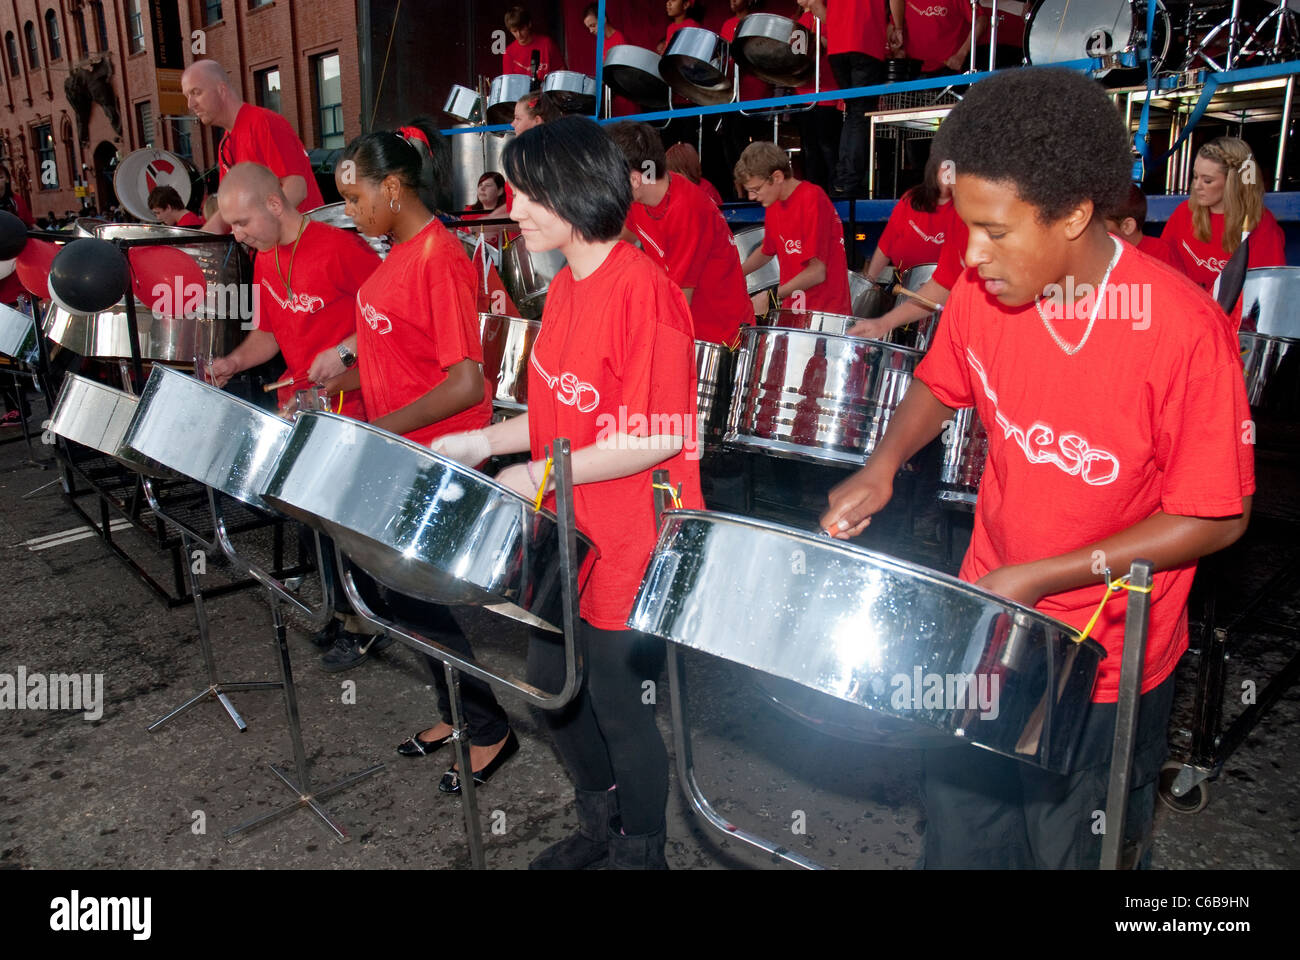 emslie notting august hill panorama and carnival photo london bands compete metronomes featuring horniman national uk stock in steel competition mangrove pleasance park the at